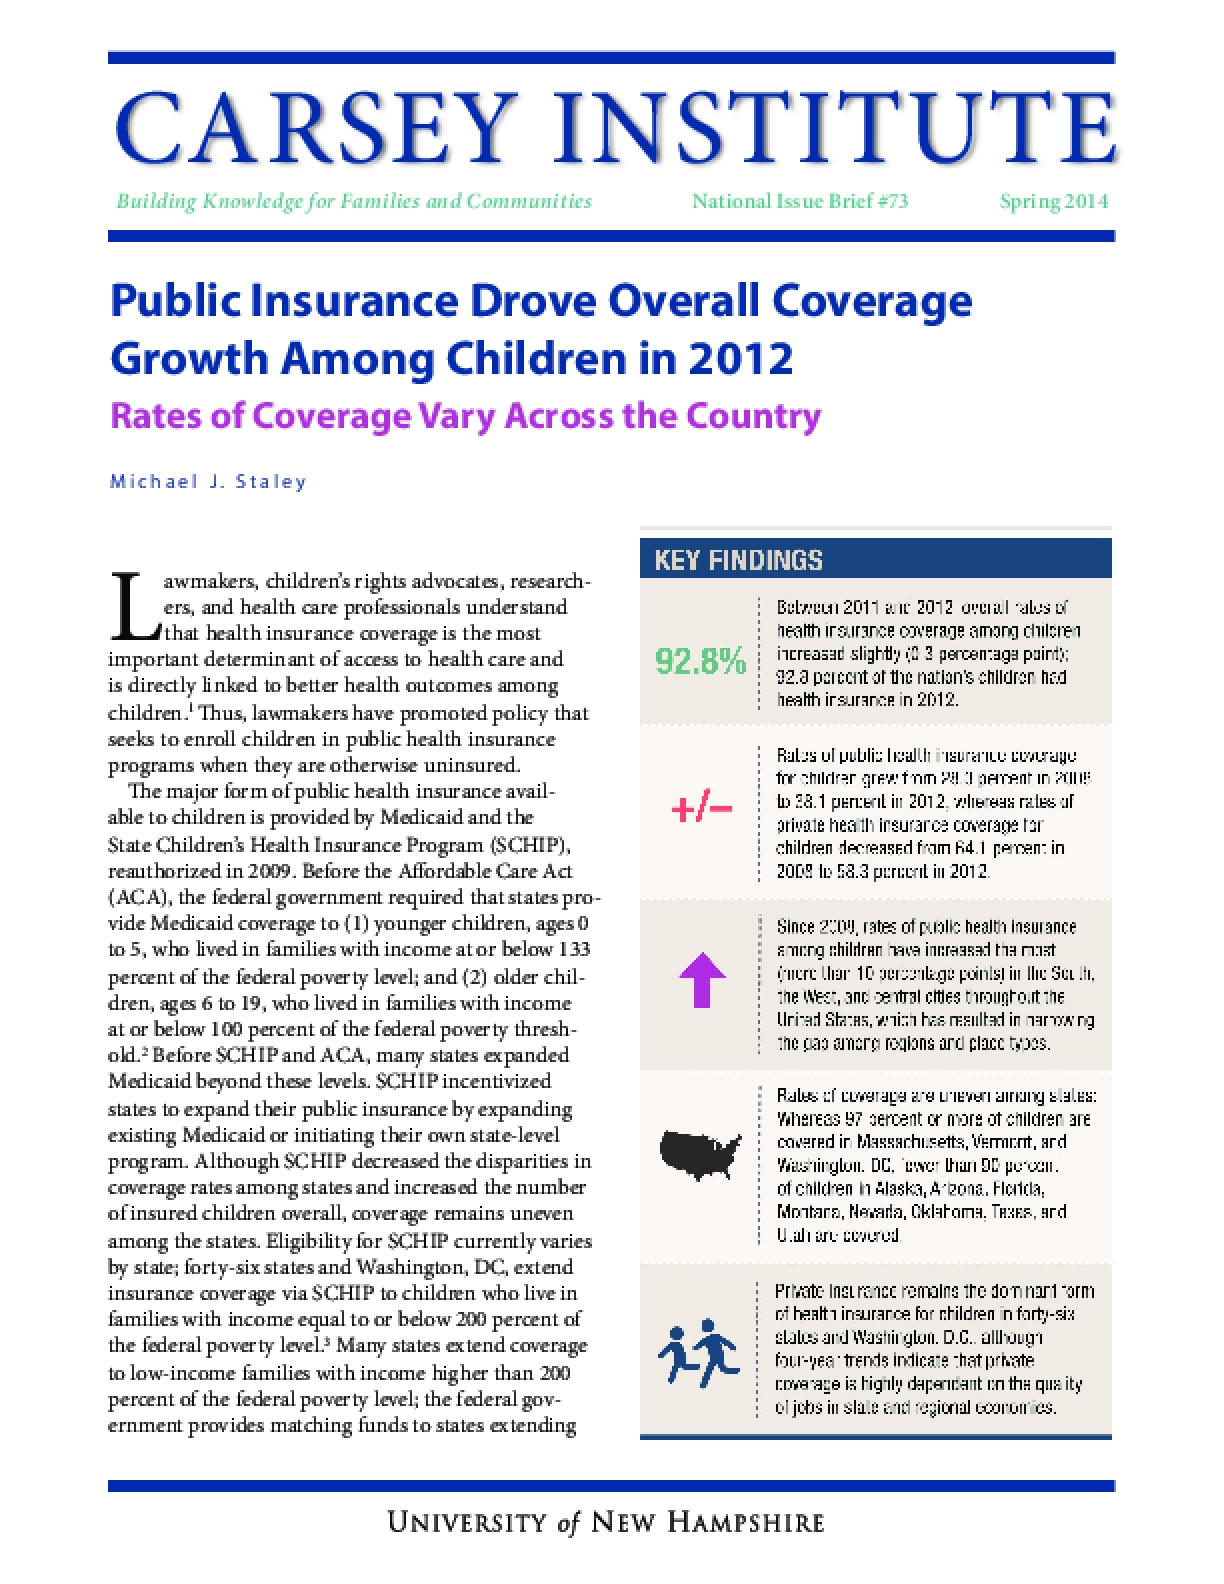 Public Insurance Drove Overall Coverage Growth Among Children in 2012